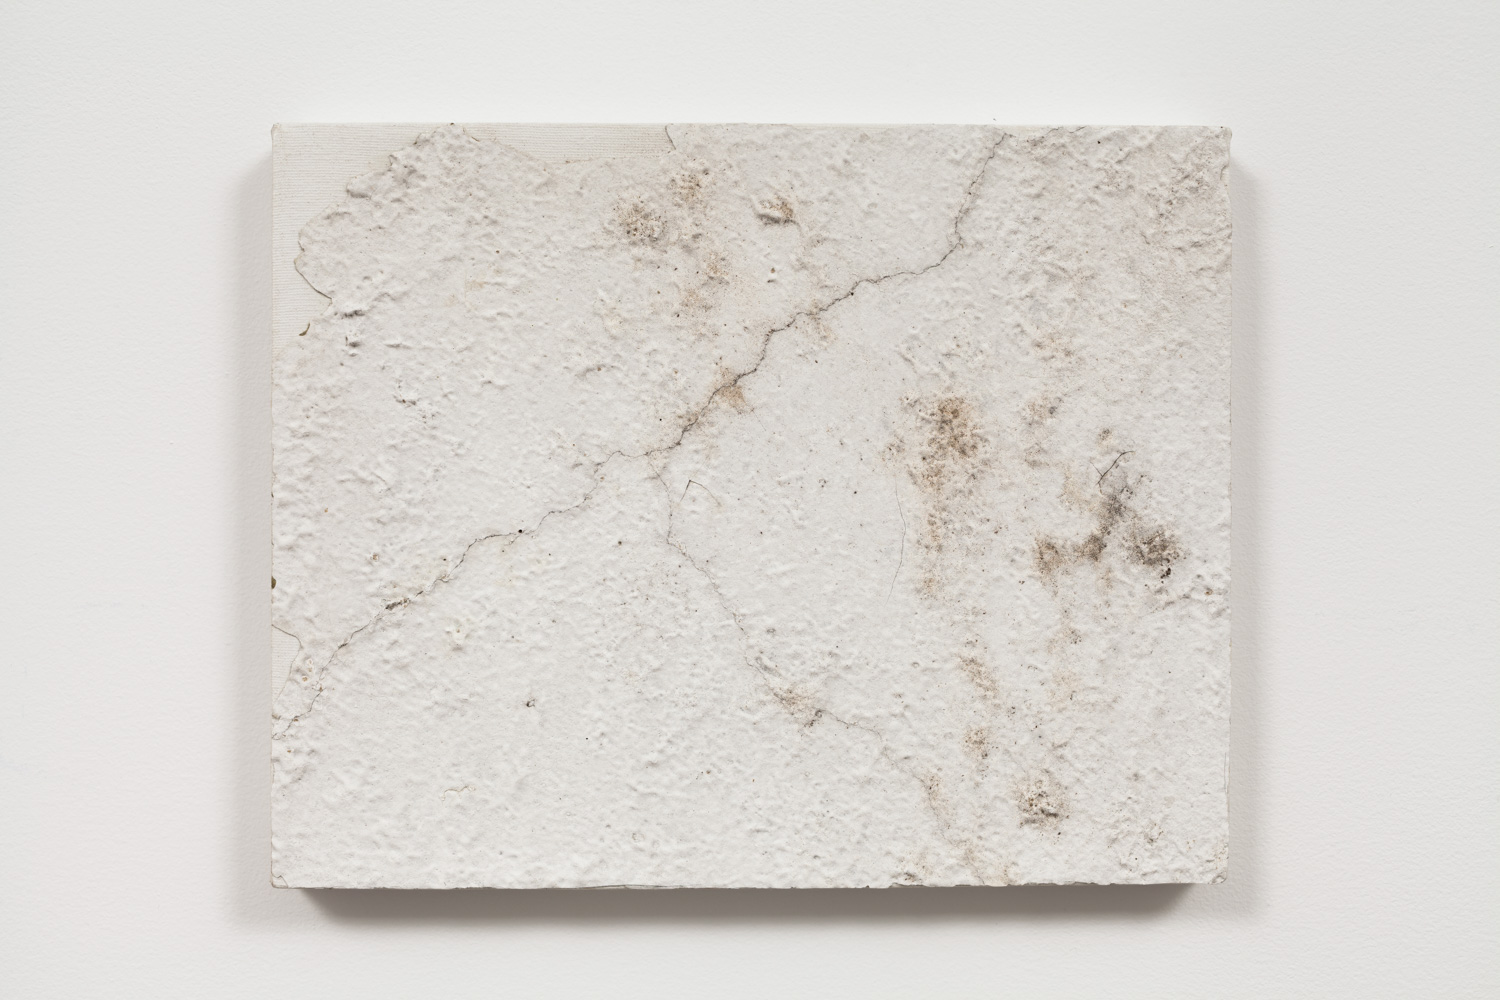 Pablo Rasgado. <em>Lightning</em>, 2011. Acrylic, plaster and dirt on canvas, 8 x 10 inches  (20.3 x 25.4 cm)